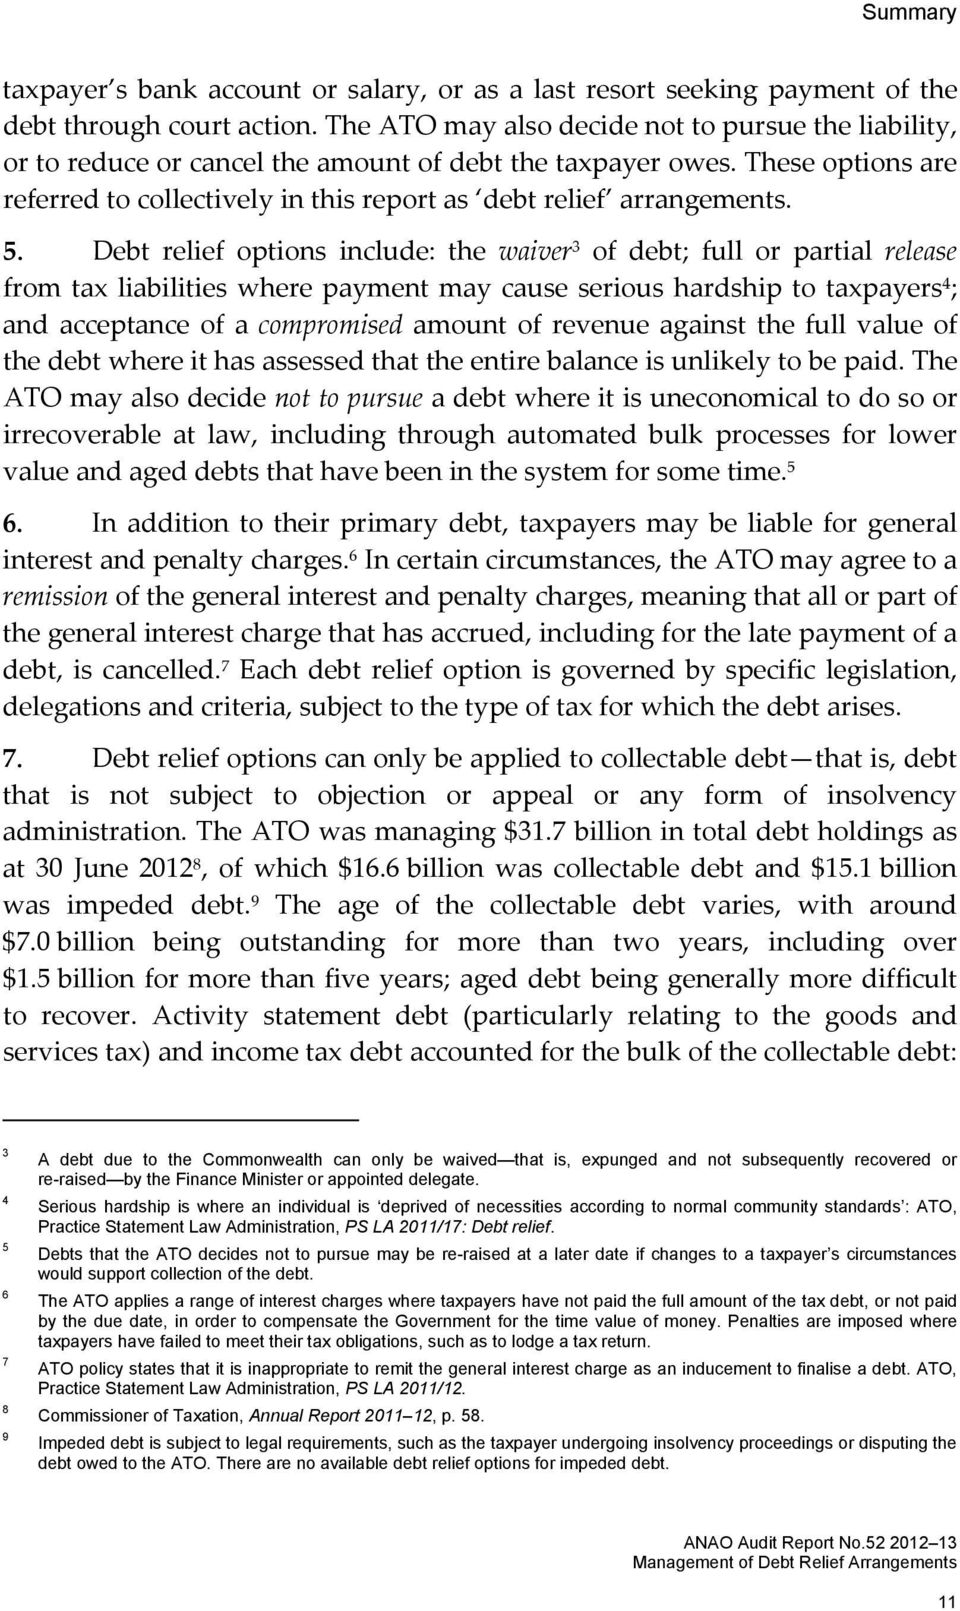 5. Debt relief options include: the waiver 3 of debt; full or partial release from tax liabilities where payment may cause serious hardship to taxpayers 4 ; and acceptance of a compromised amount of